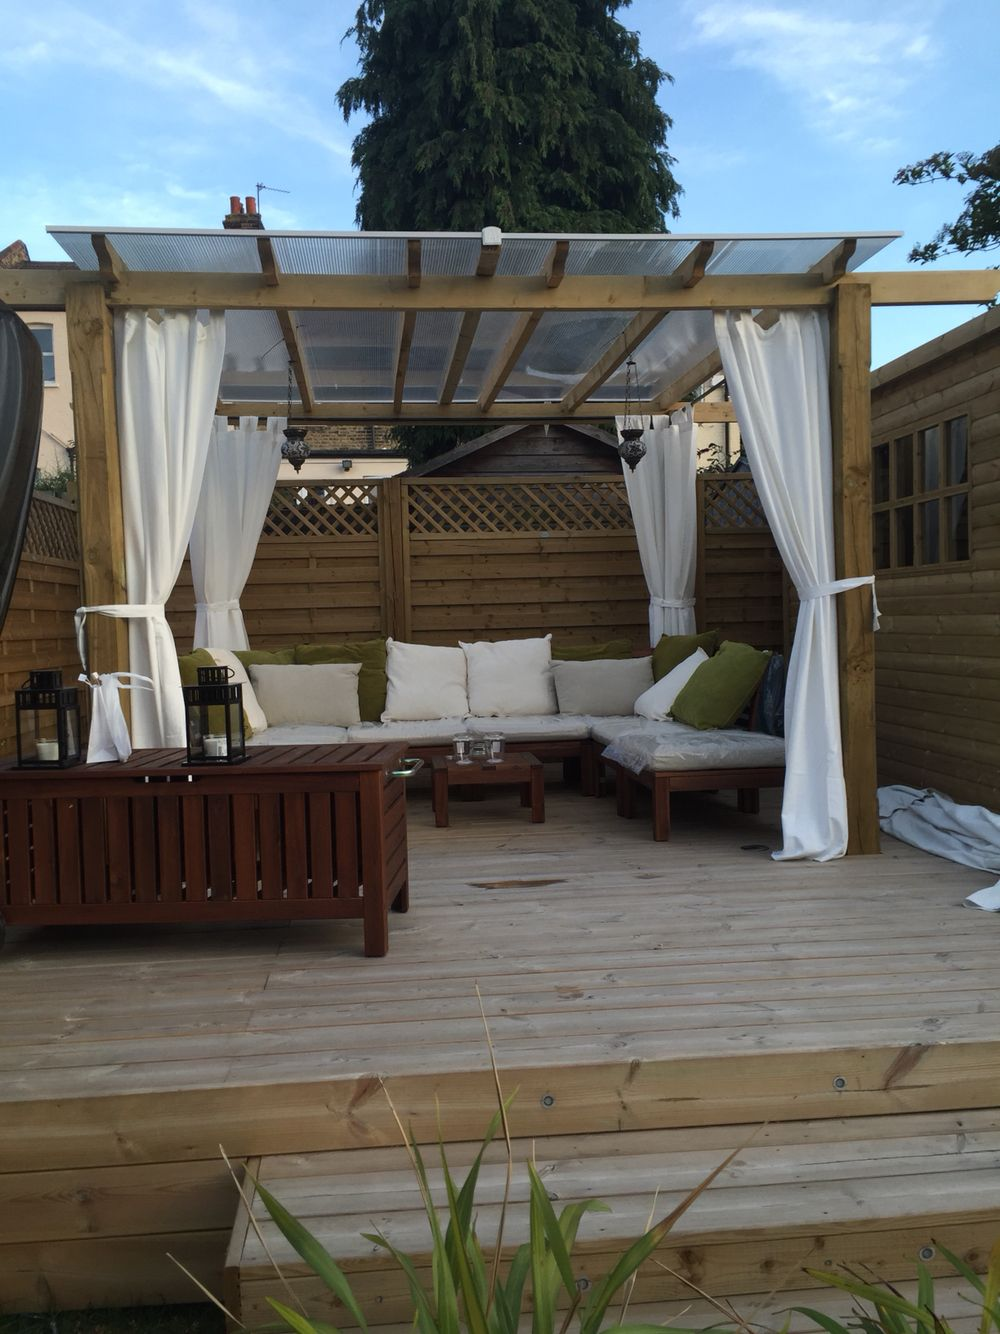 Pergola curtains outdoor - Pergola With Curtains Poles And Curtains From Ikea